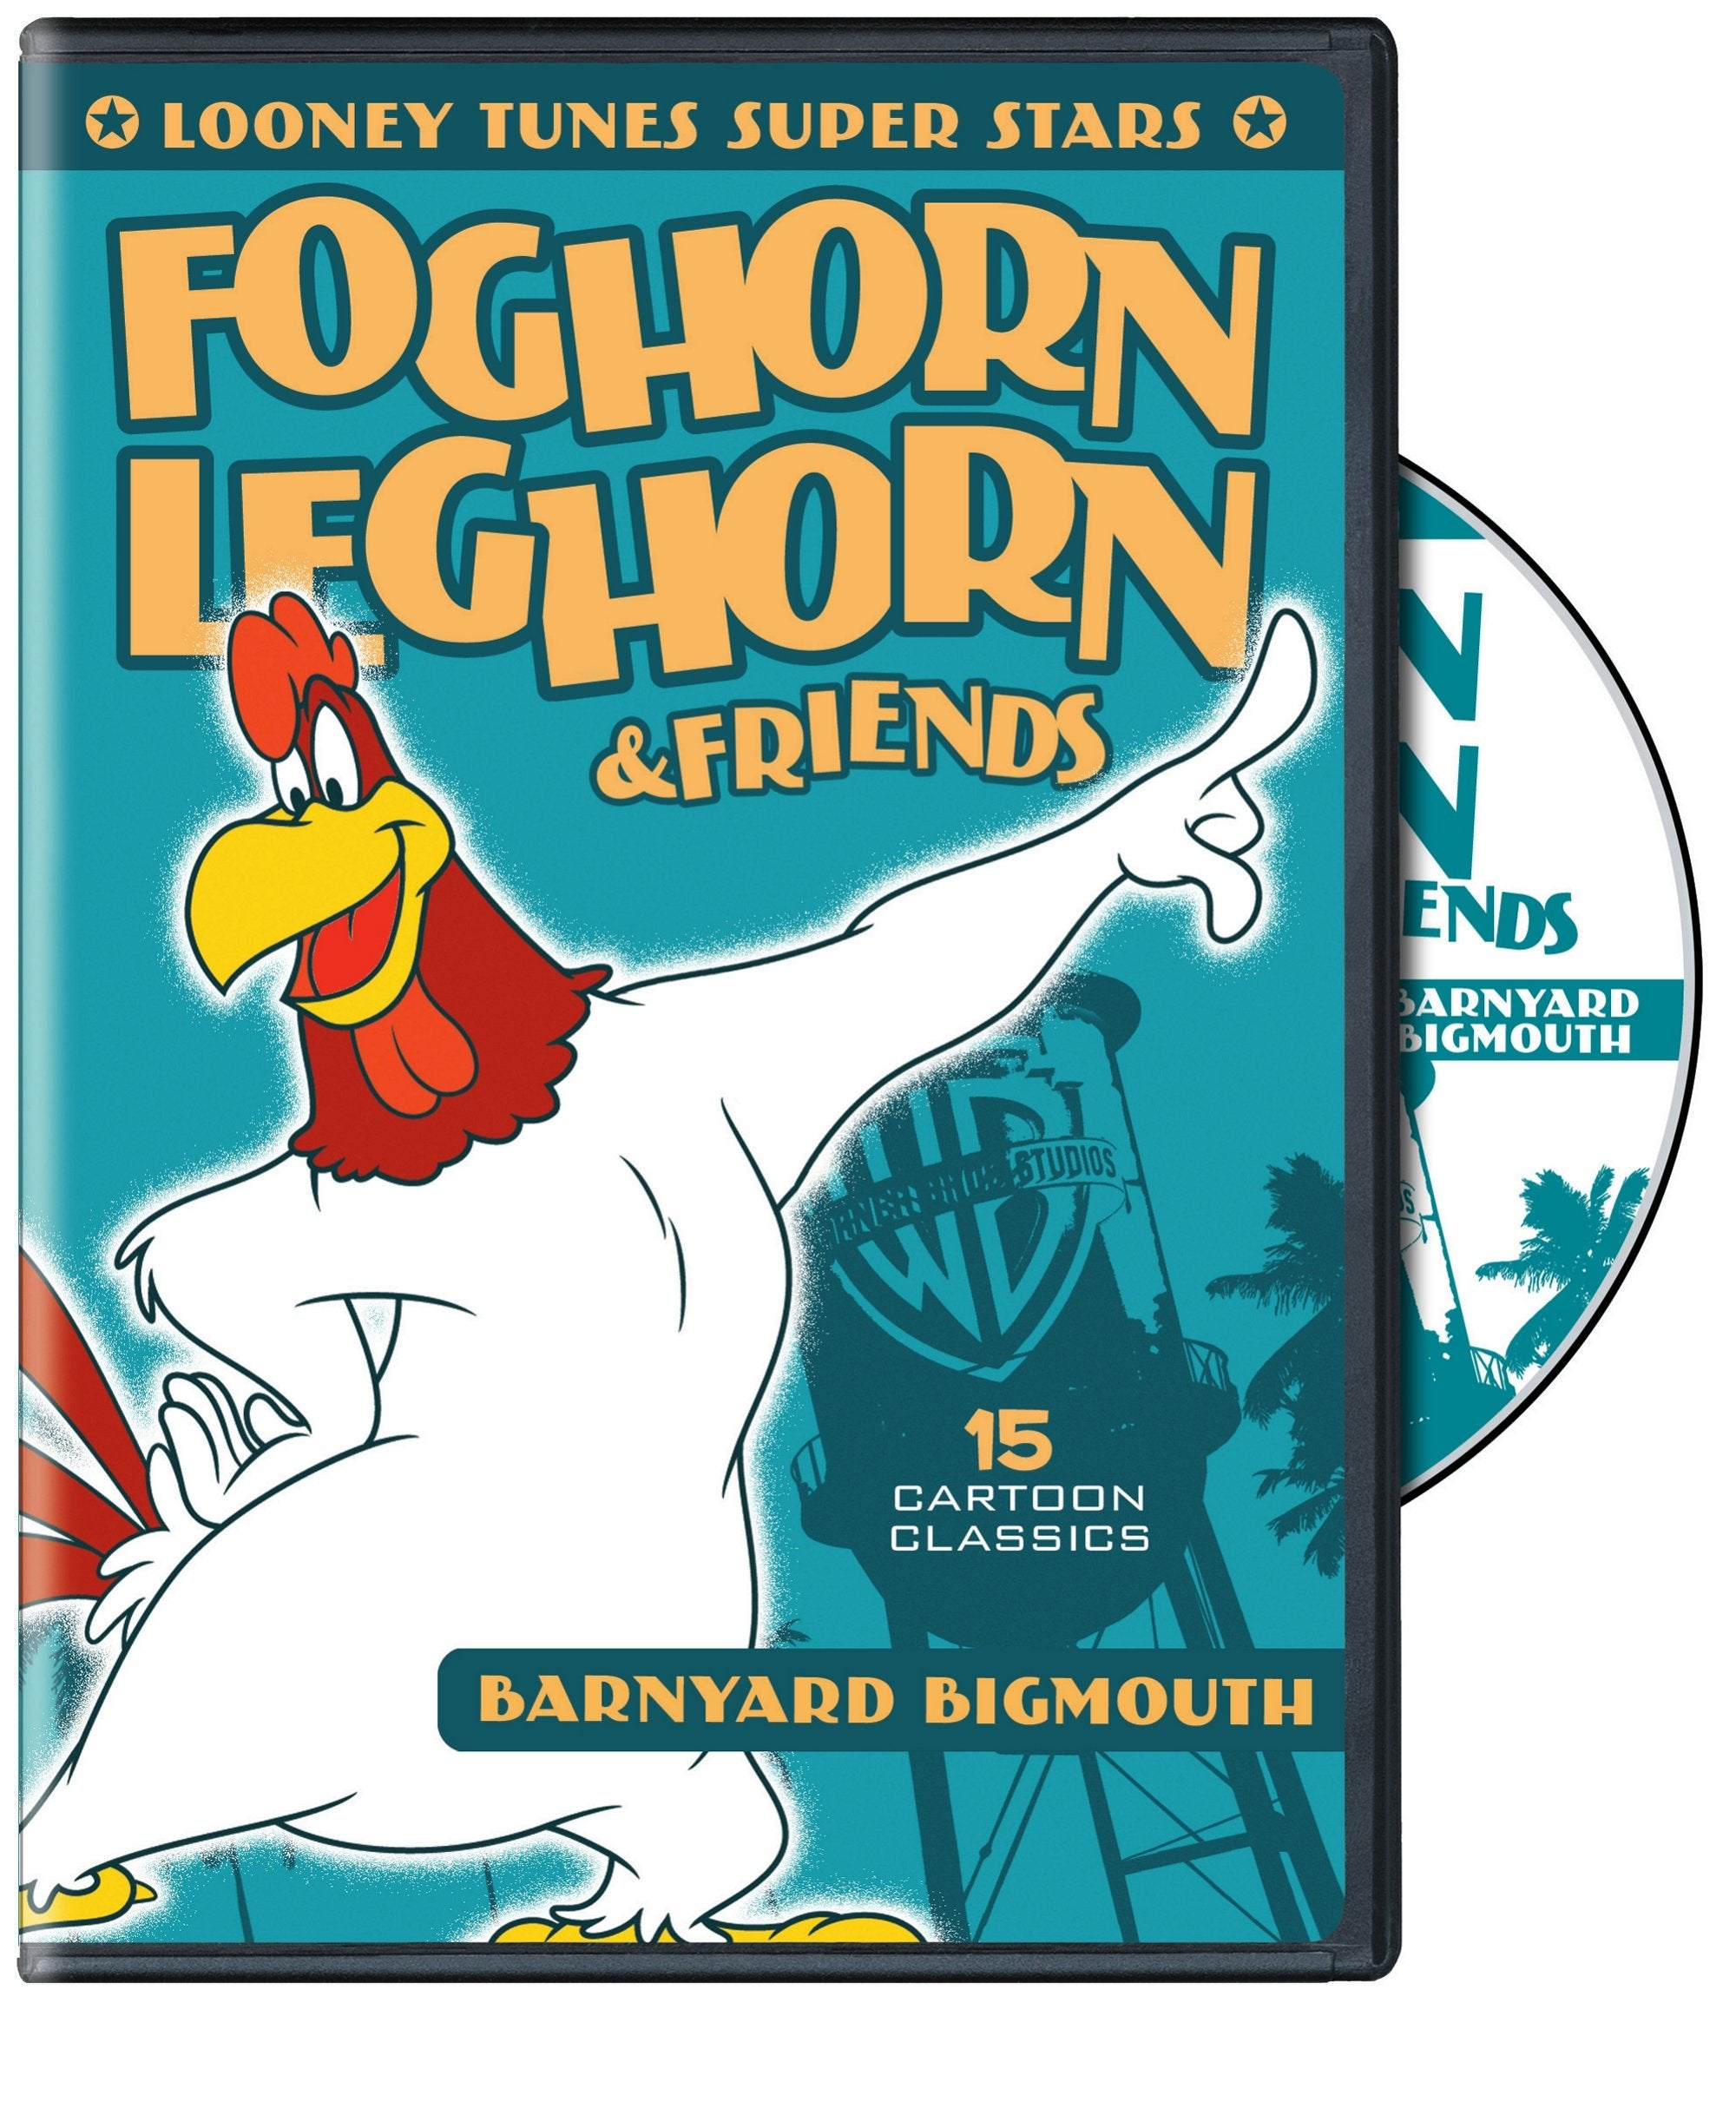 Looney Tunes Super Stars: Foghorn Leghorn & Friends (DVD)